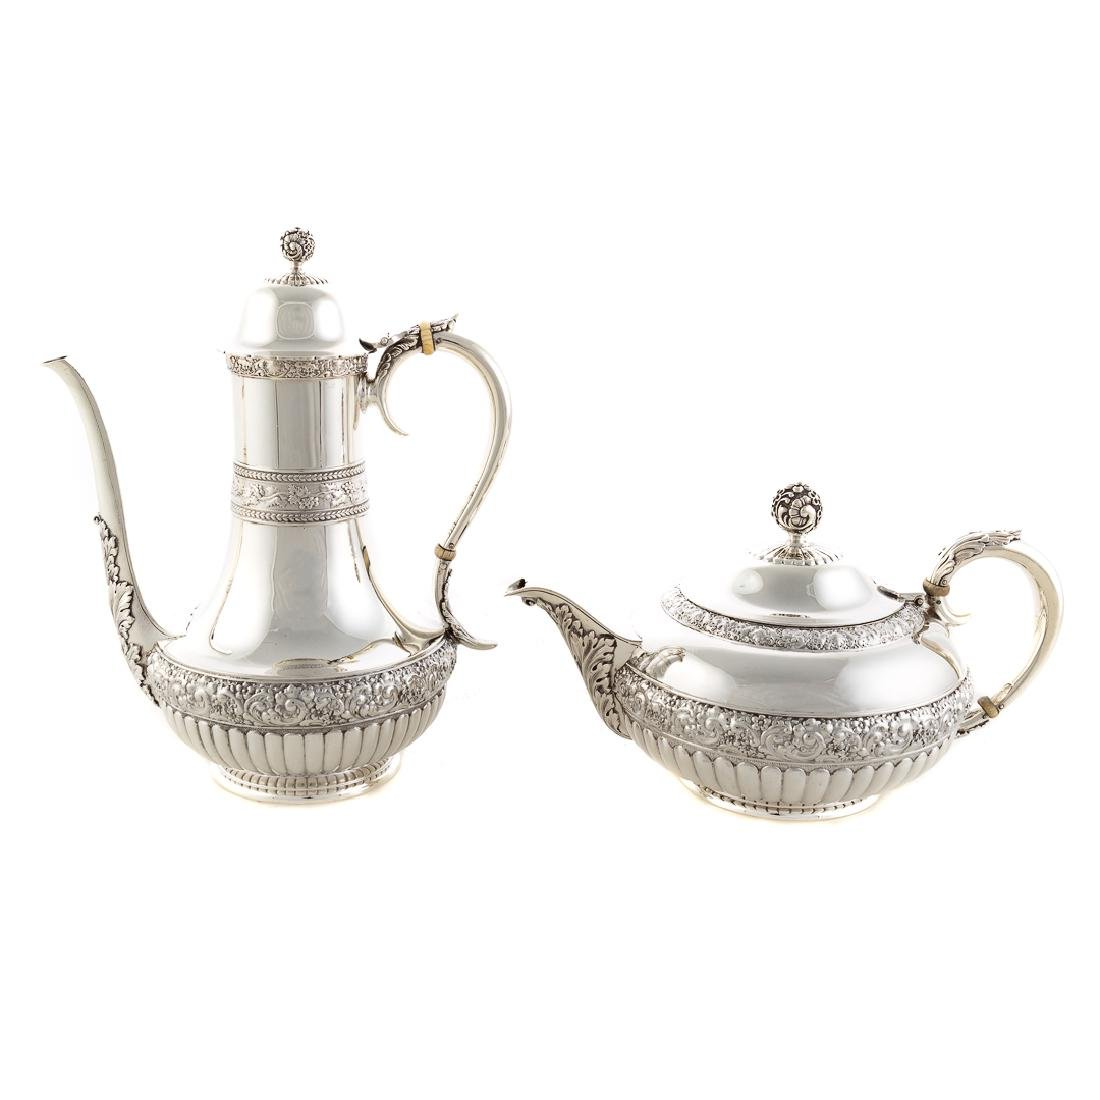 Very fine Tiffany sterling coffee & tea service - 7